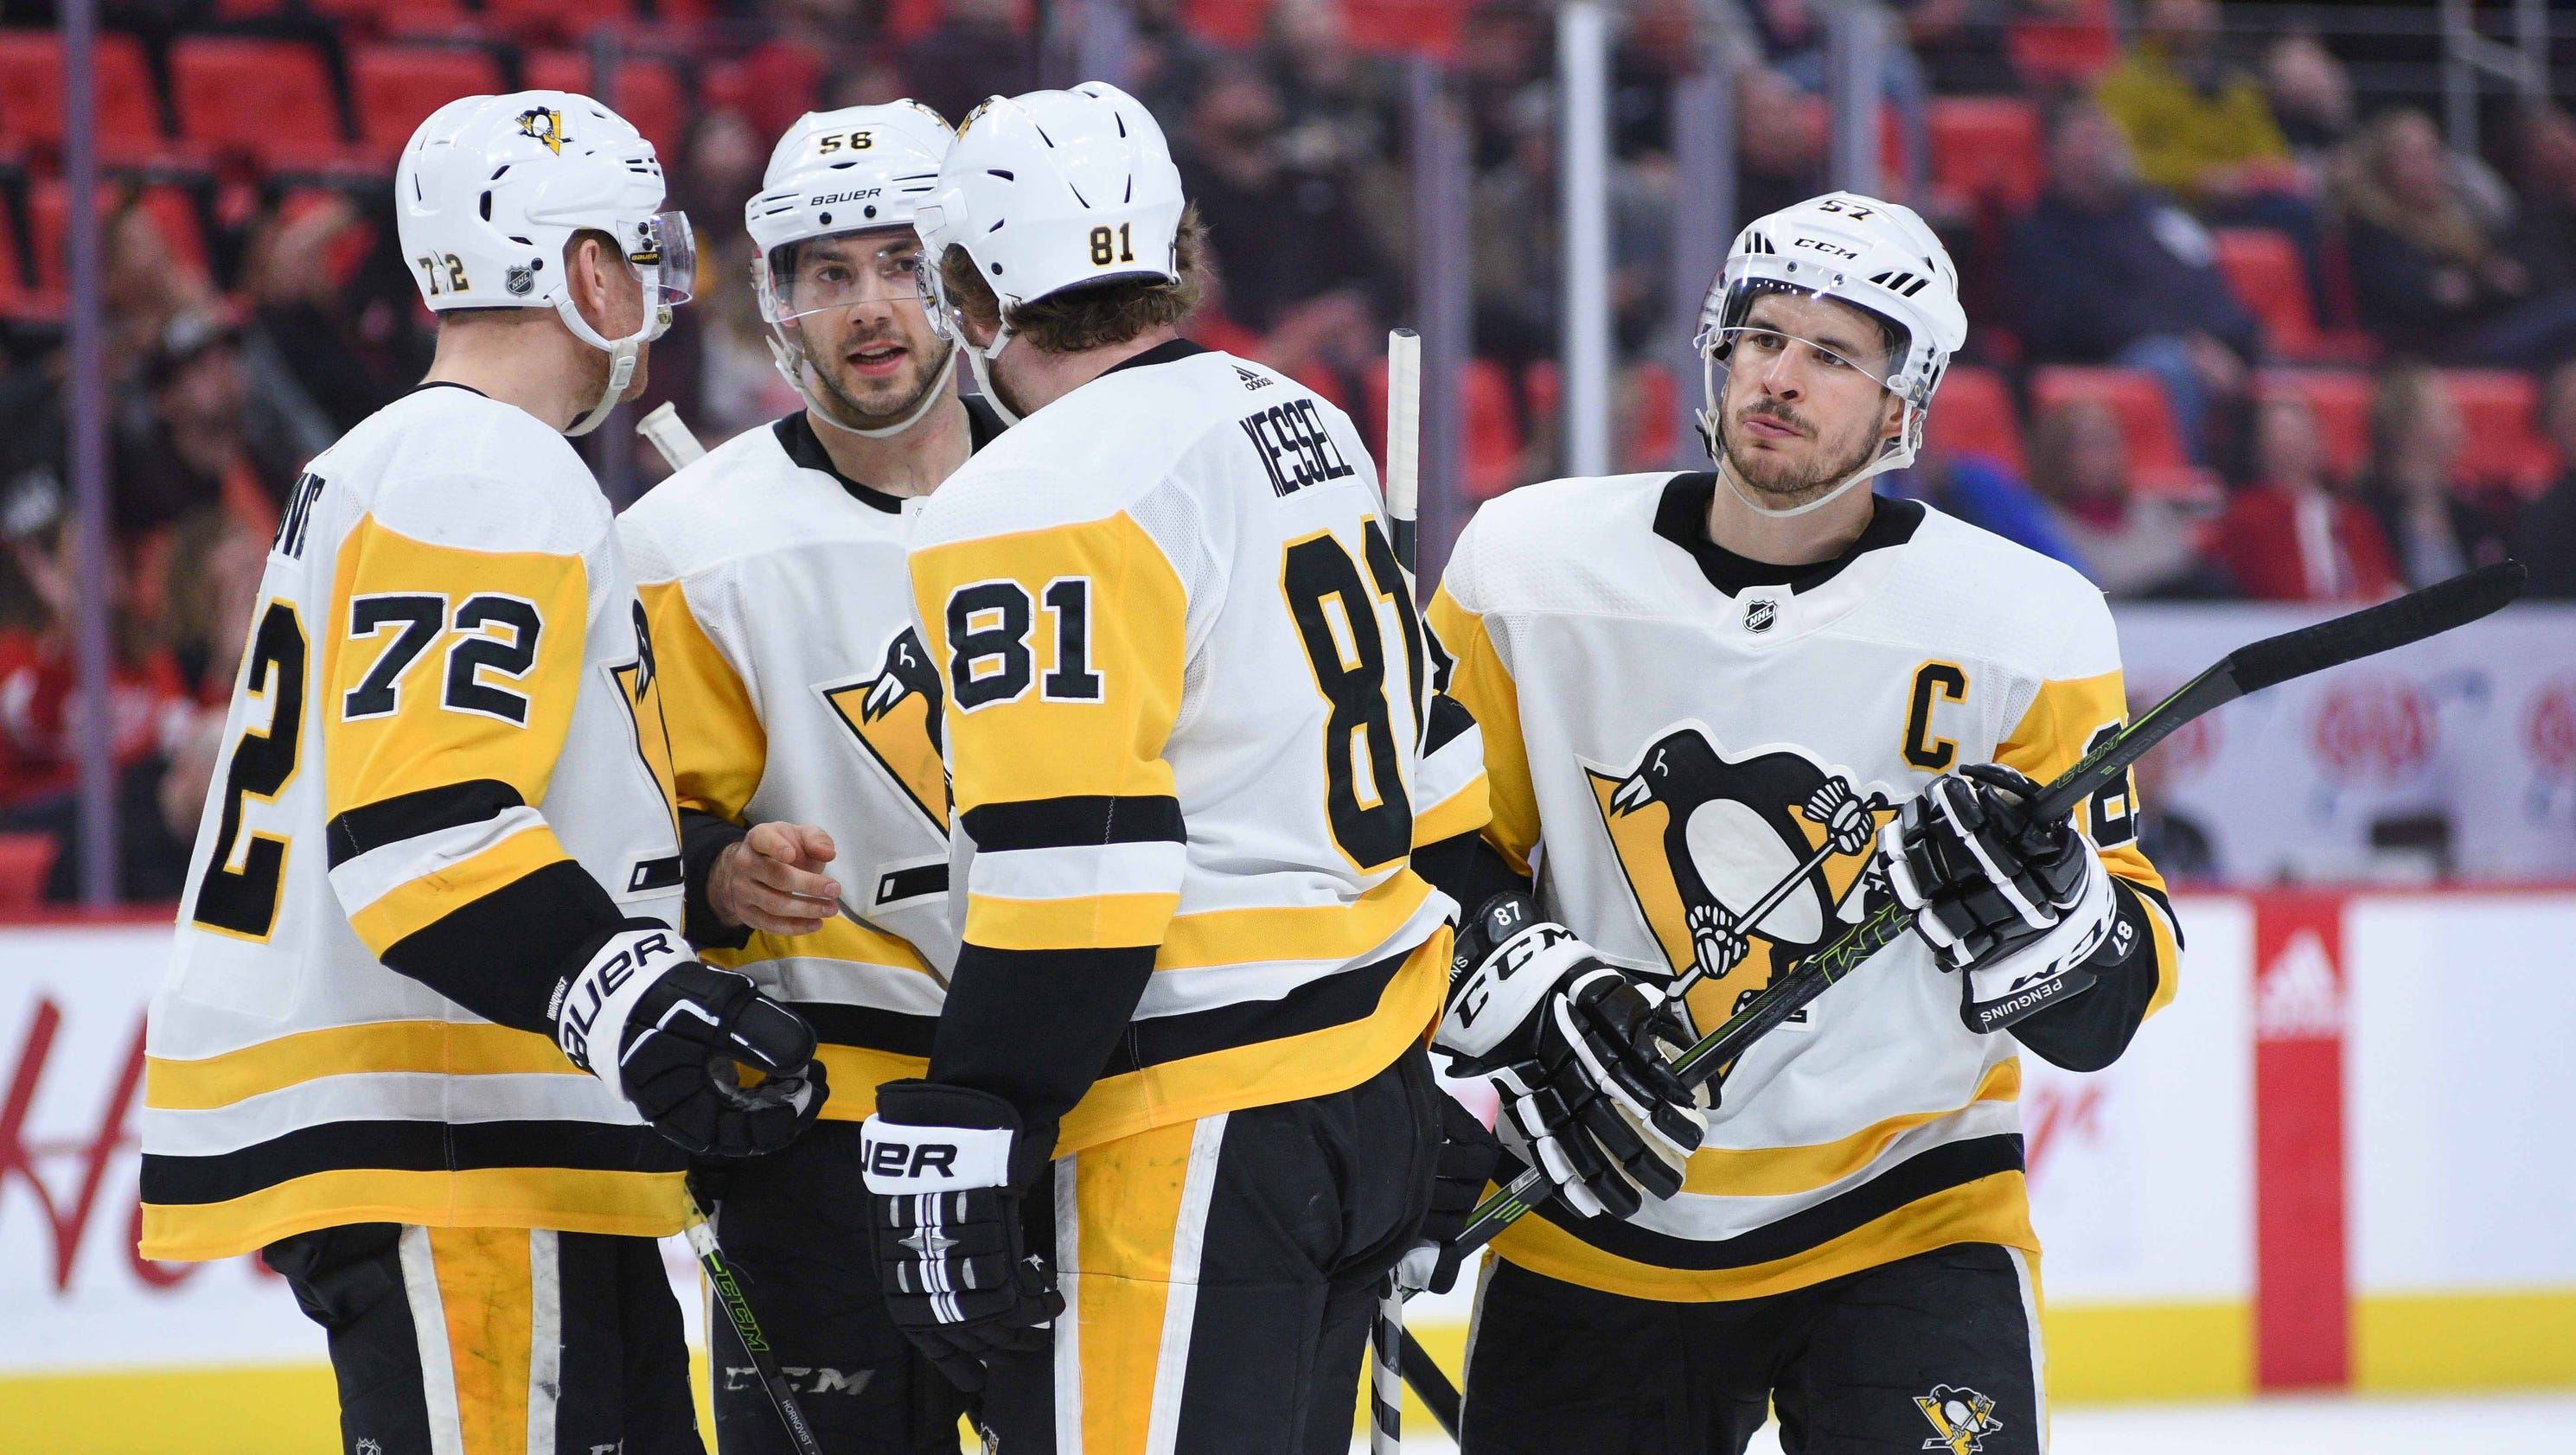 636589715679280774-usp-nhl--pittsburgh-penguins-at-detroit-red-wings